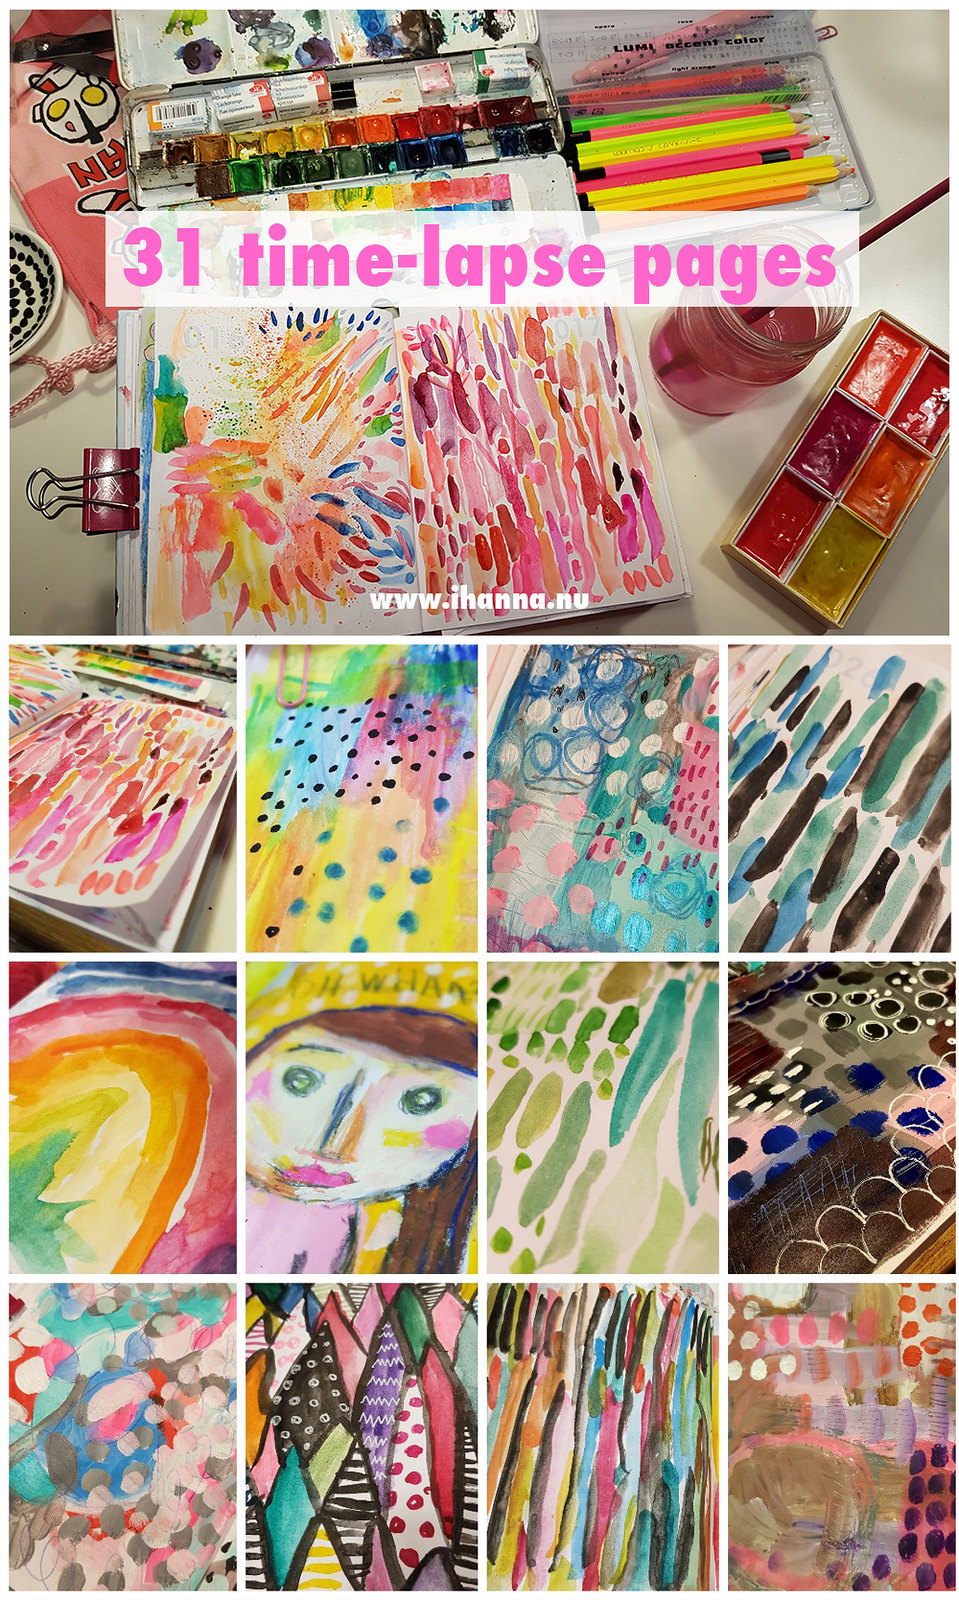 Filmed 31 time-lapse videos of iHanna painting and doodling #artjournal